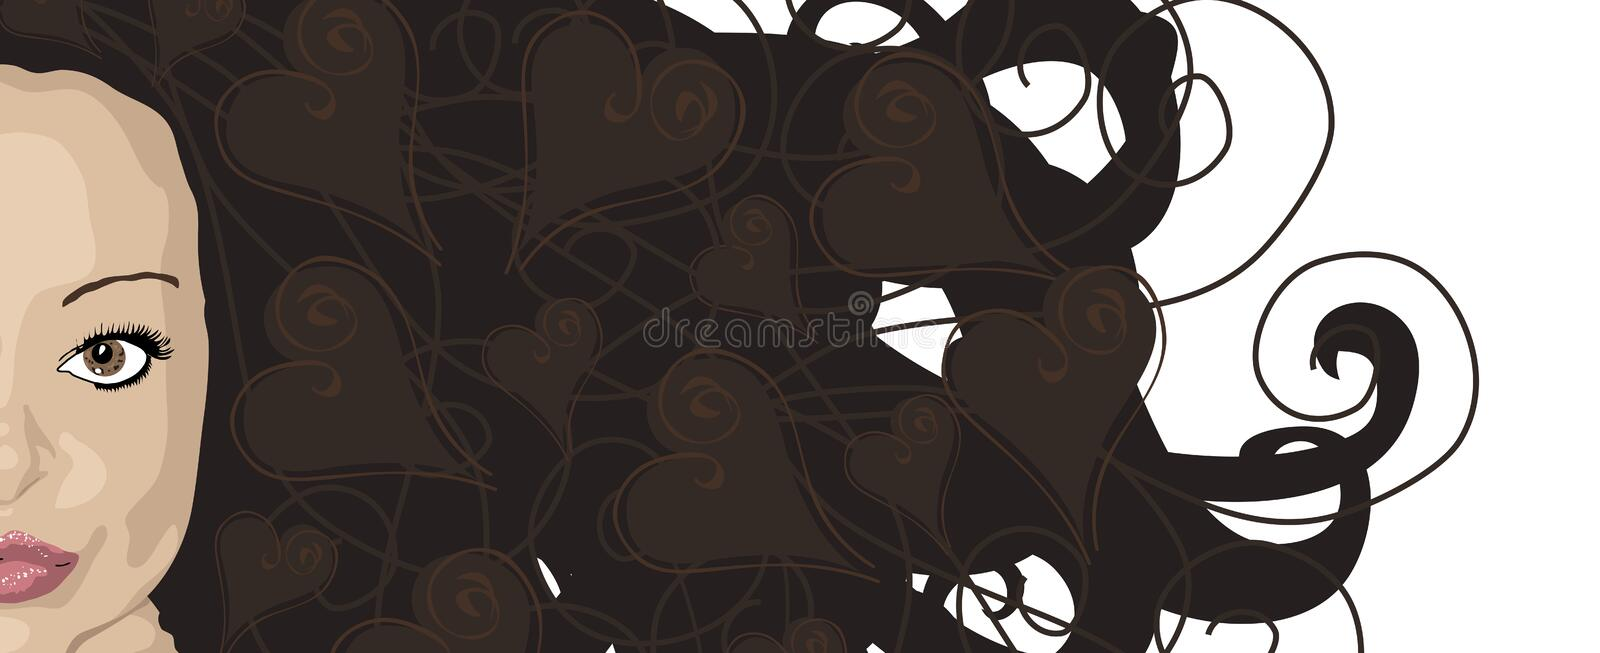 Hearty Hair Brunette. Illustration banner of woman with brunette hair and heart highlights vector illustration